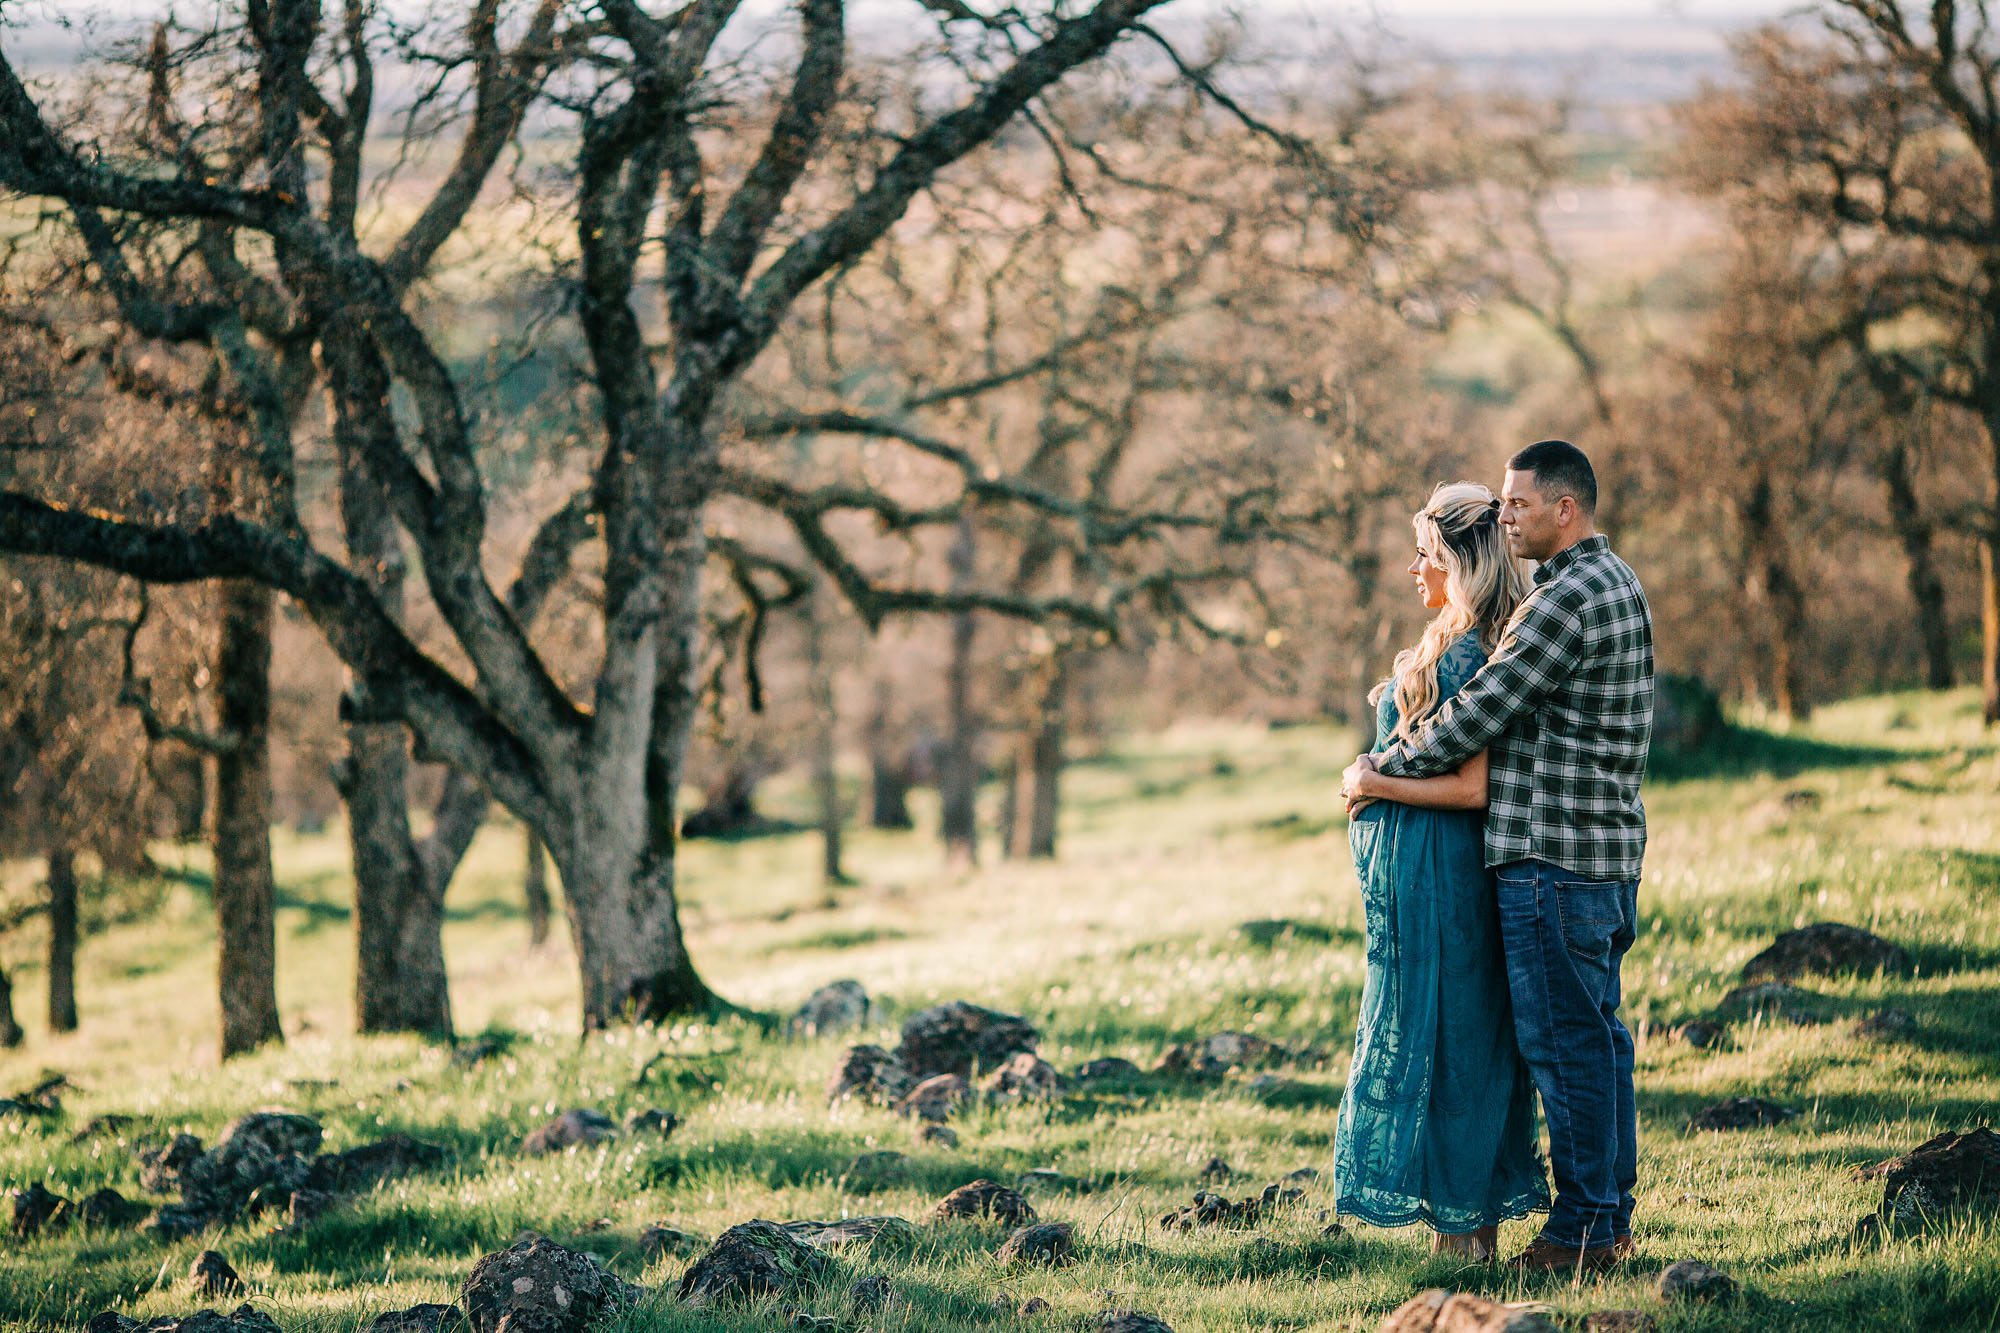 A couple looks out at the view at a park in the Roseville, California area during a maternity photo session wtih Amy Wright Photography.